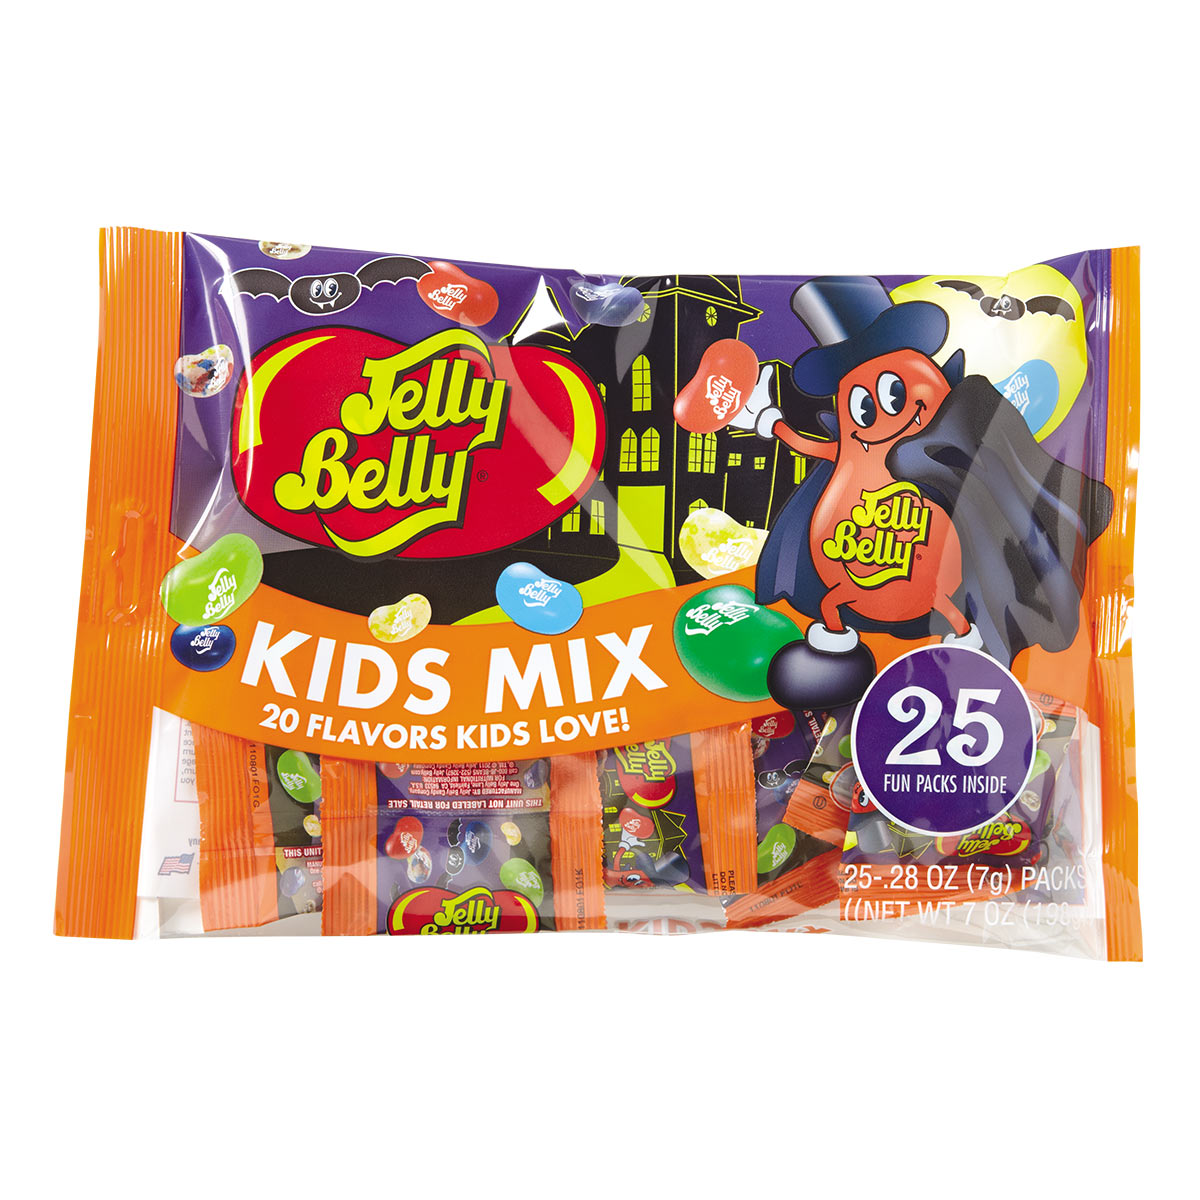 Halloween Gift Baskets: Halloween Jelly Beans and Candy | Jelly ...